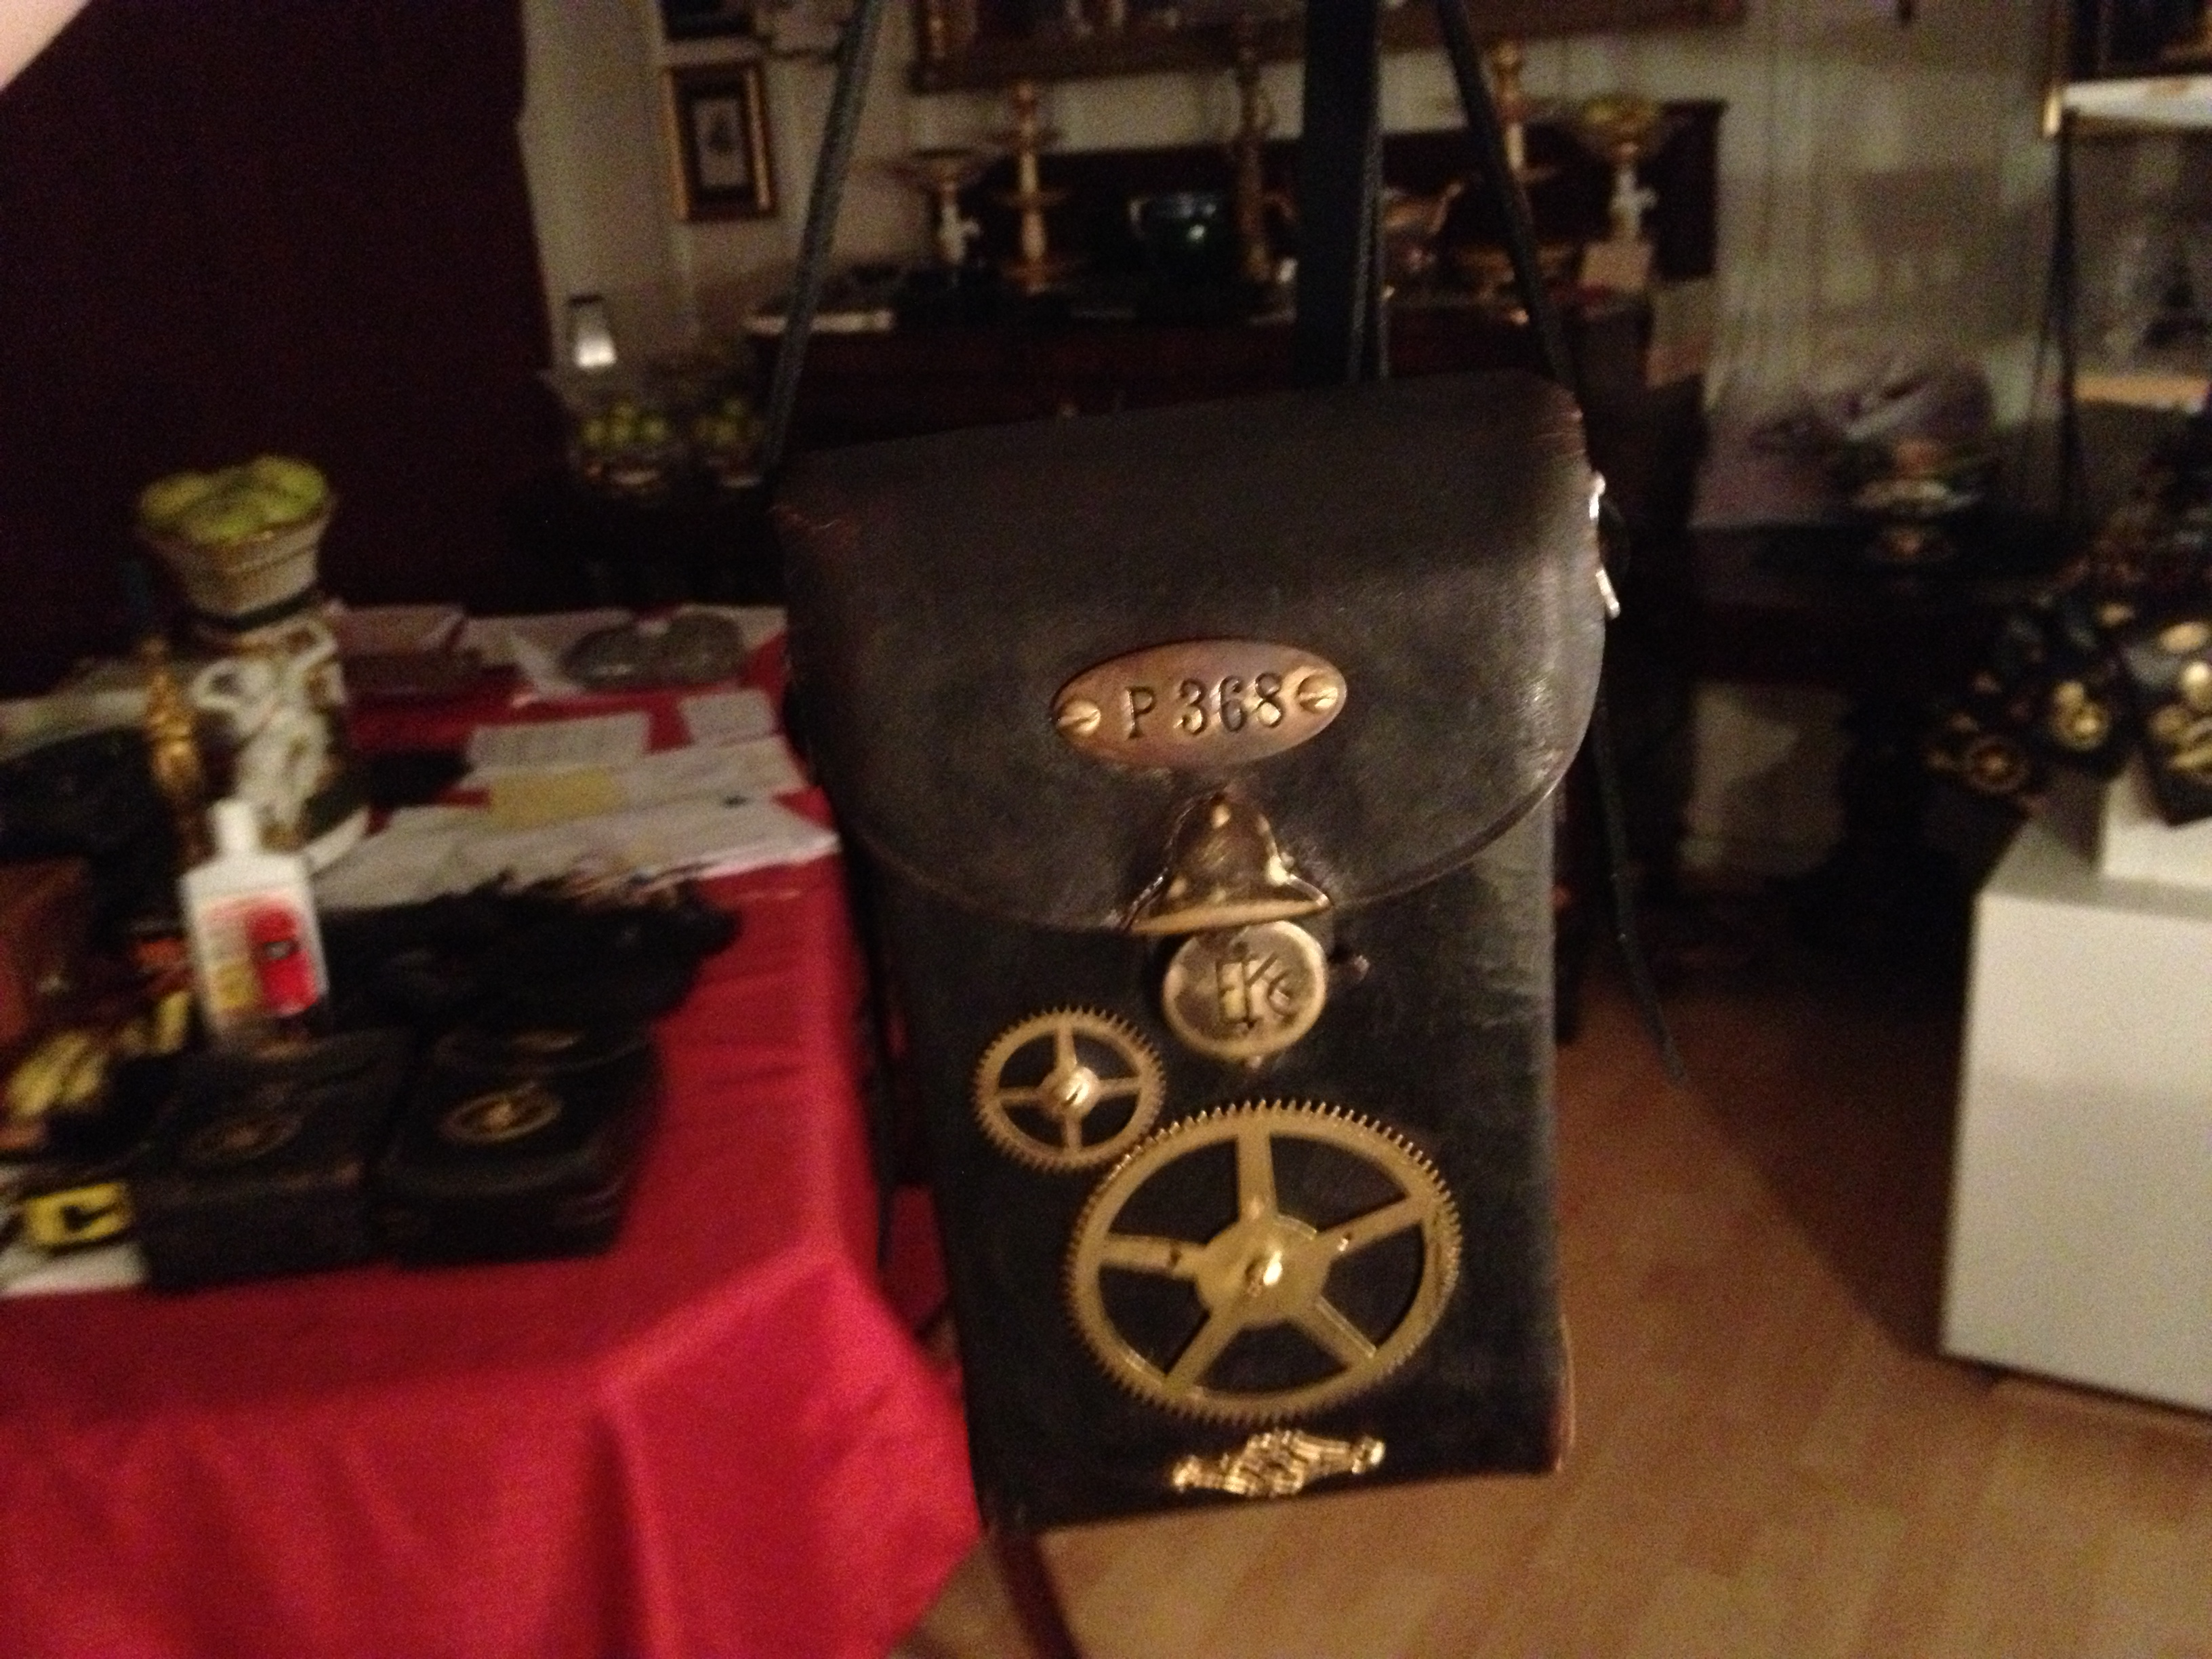 i_gearz_steampunk_adventure_case_medium_size_antique_leather_carry_case_p_368_bags_and_backpacks_2.JPG